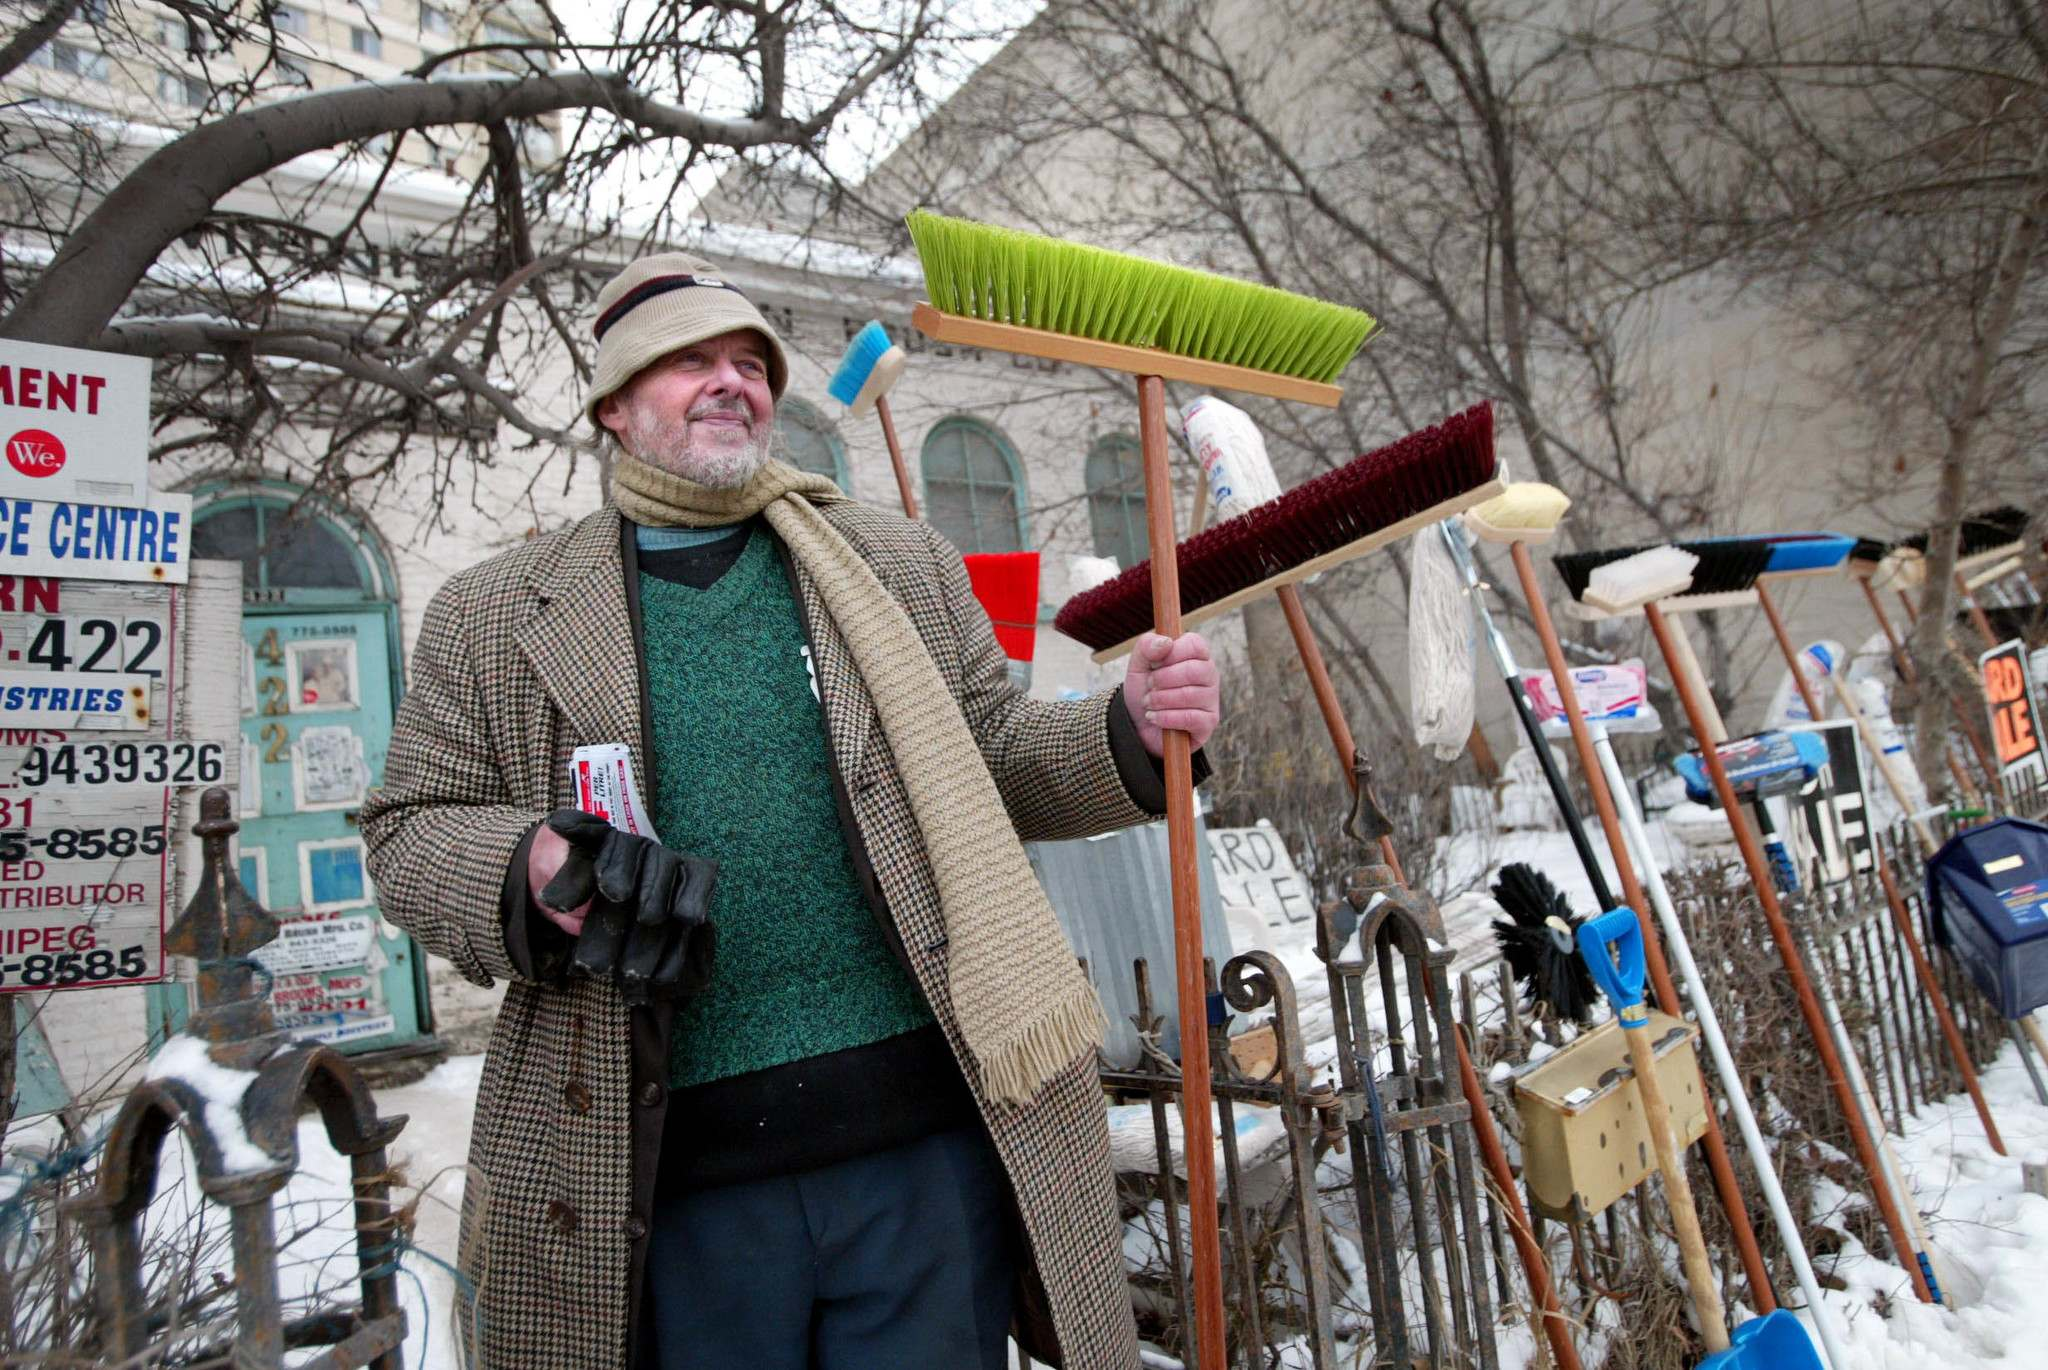 MIKAELA MACKENZIE / WINNIPEG FREE PRESS</p><p>Alexander Syzek, son of the founders of the Winnipeg Modern Brush Co., sells his family's wares in 2006 outside the building, which still displays the company's name.</p>